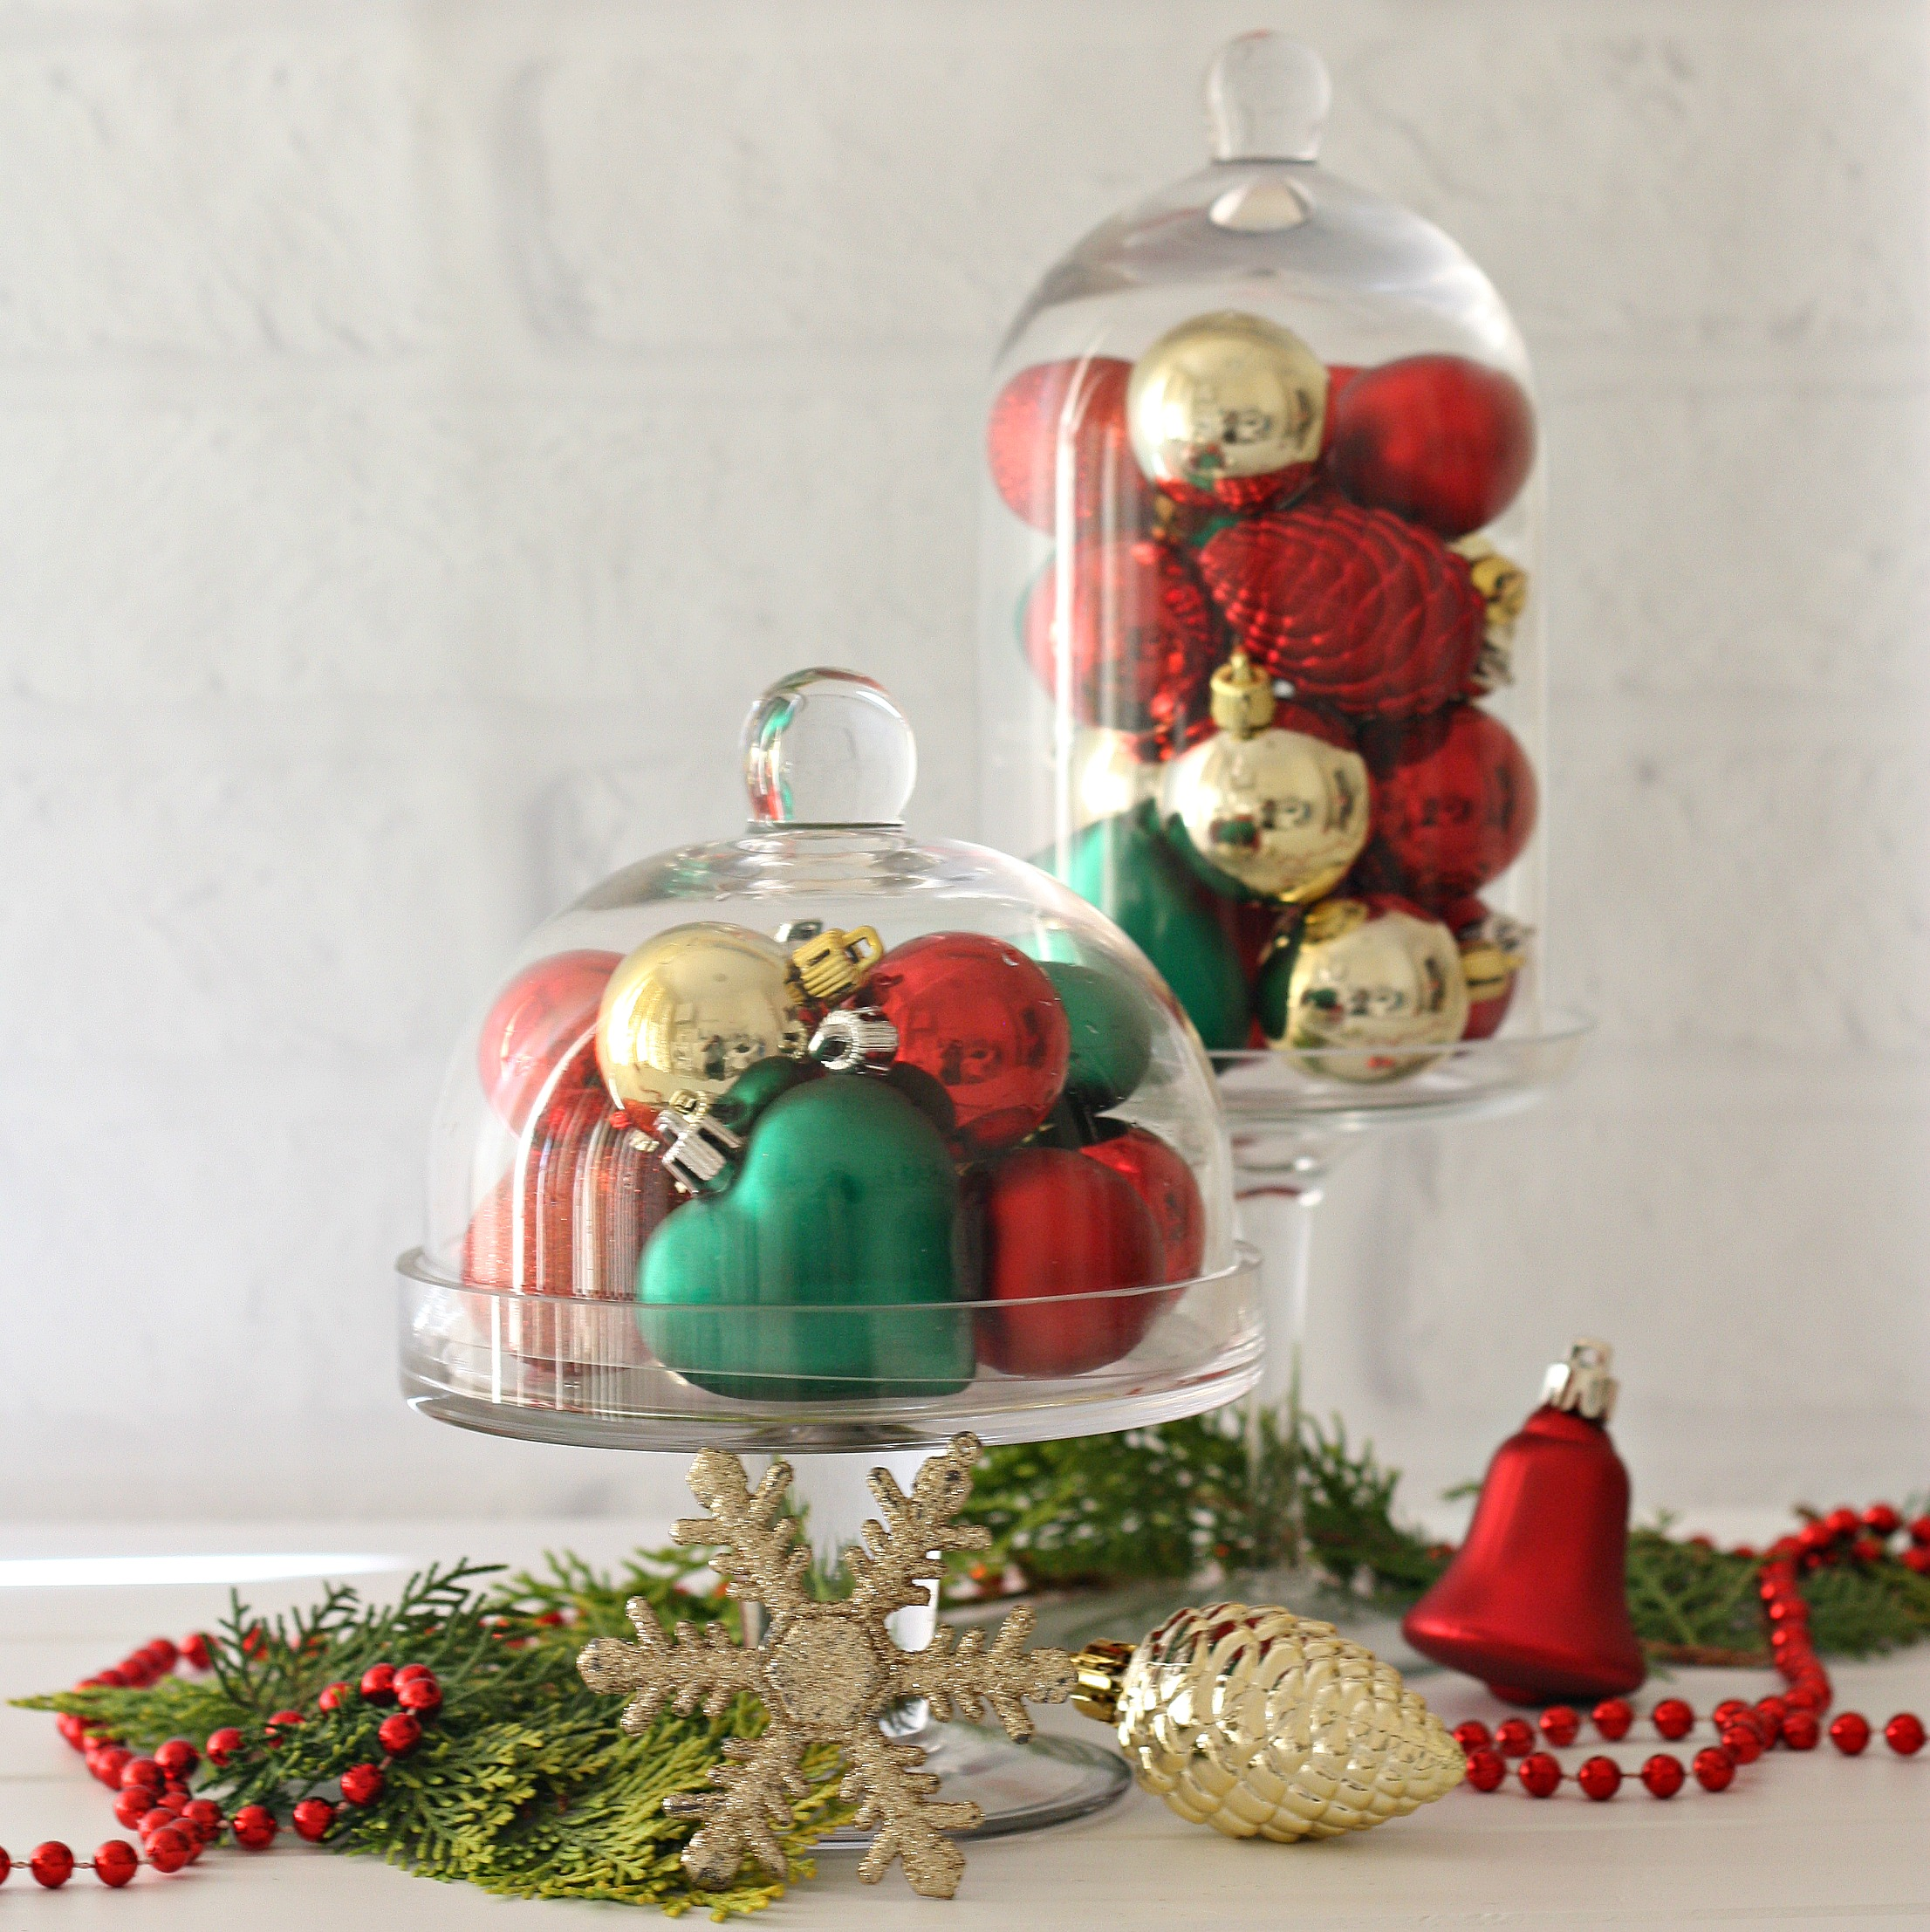 Uncategorized christmas decorations amp holiday decorations - Display Baubles In Cloche Timeless Christmas Decorations